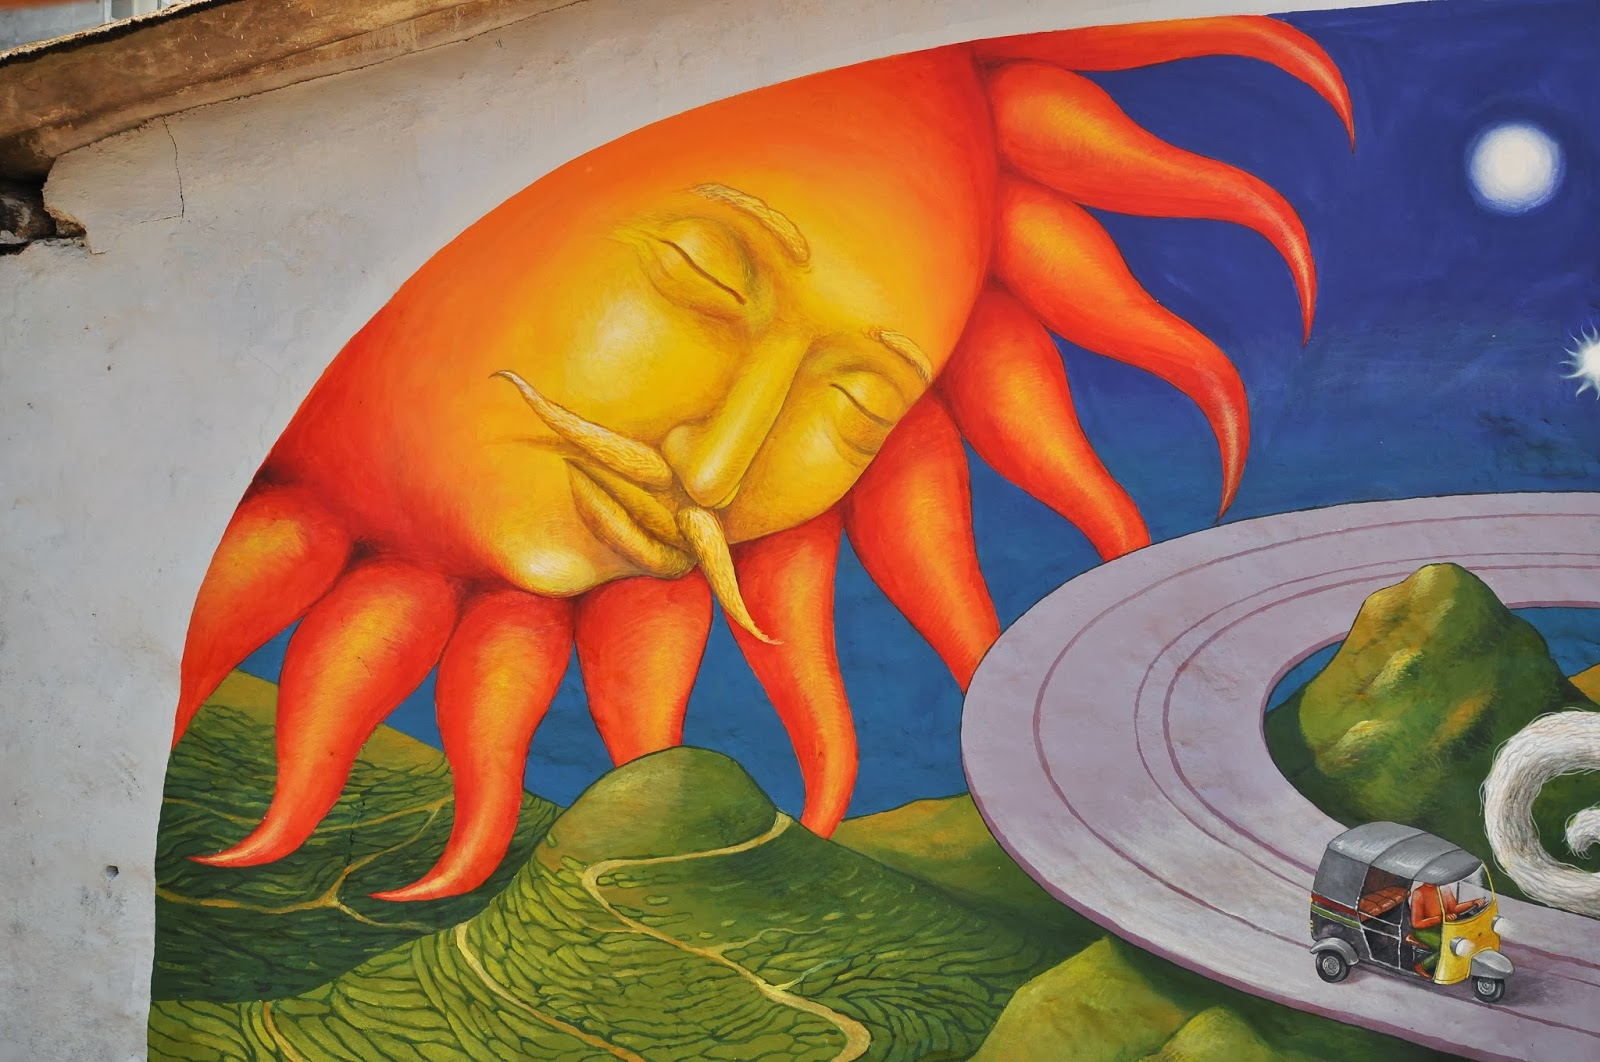 interesni-kazki-visit-of-saturn-new-mural-in-india-04